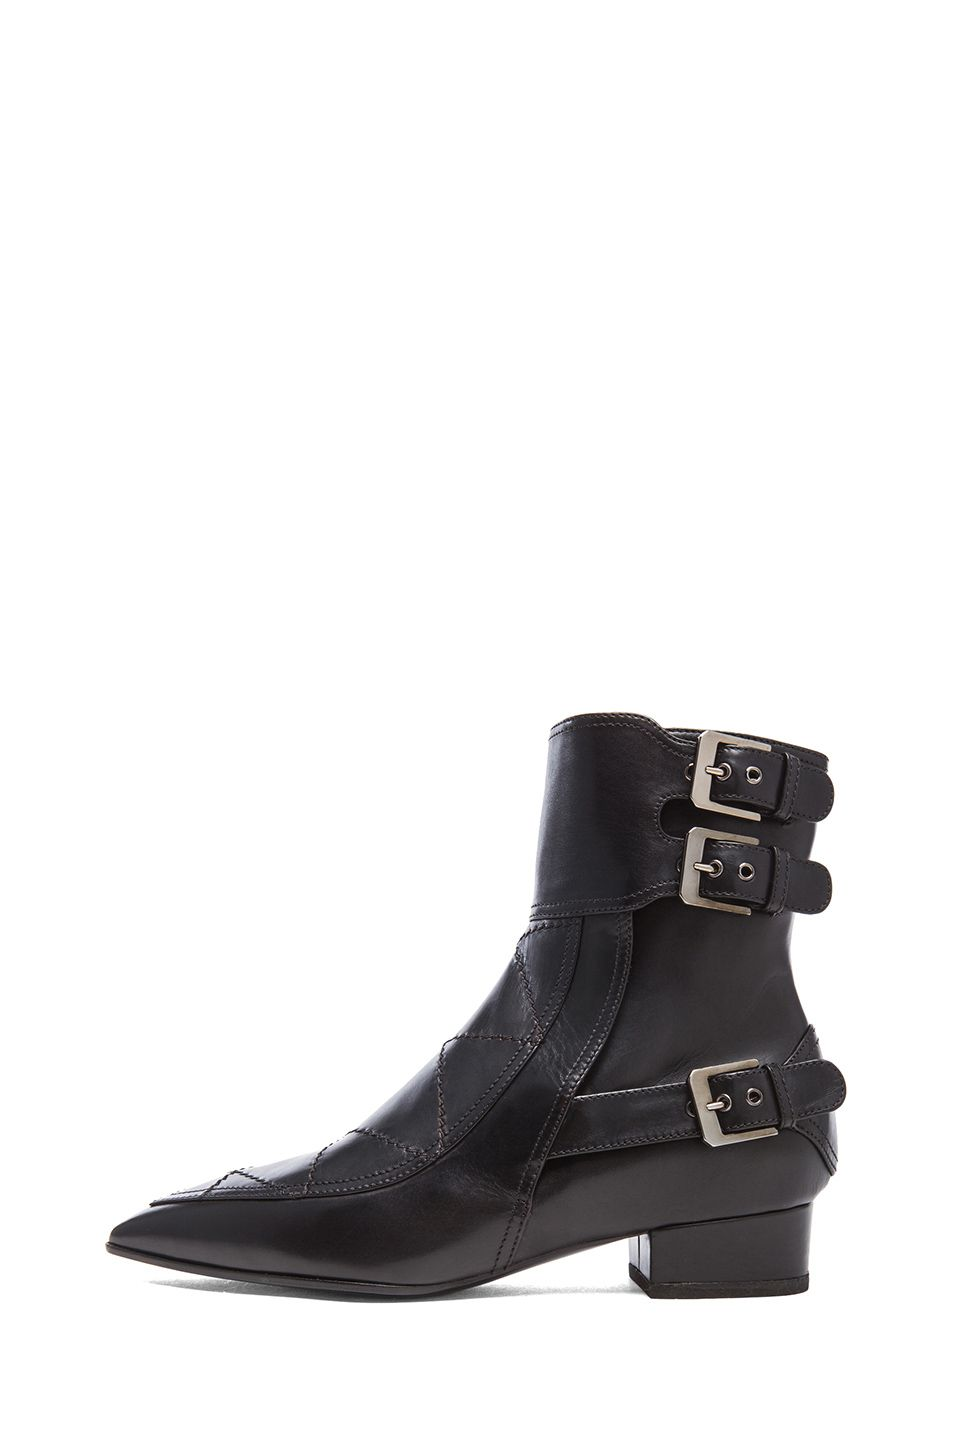 Laurence Dacade | Gepetto Leather Booties in Black Leather